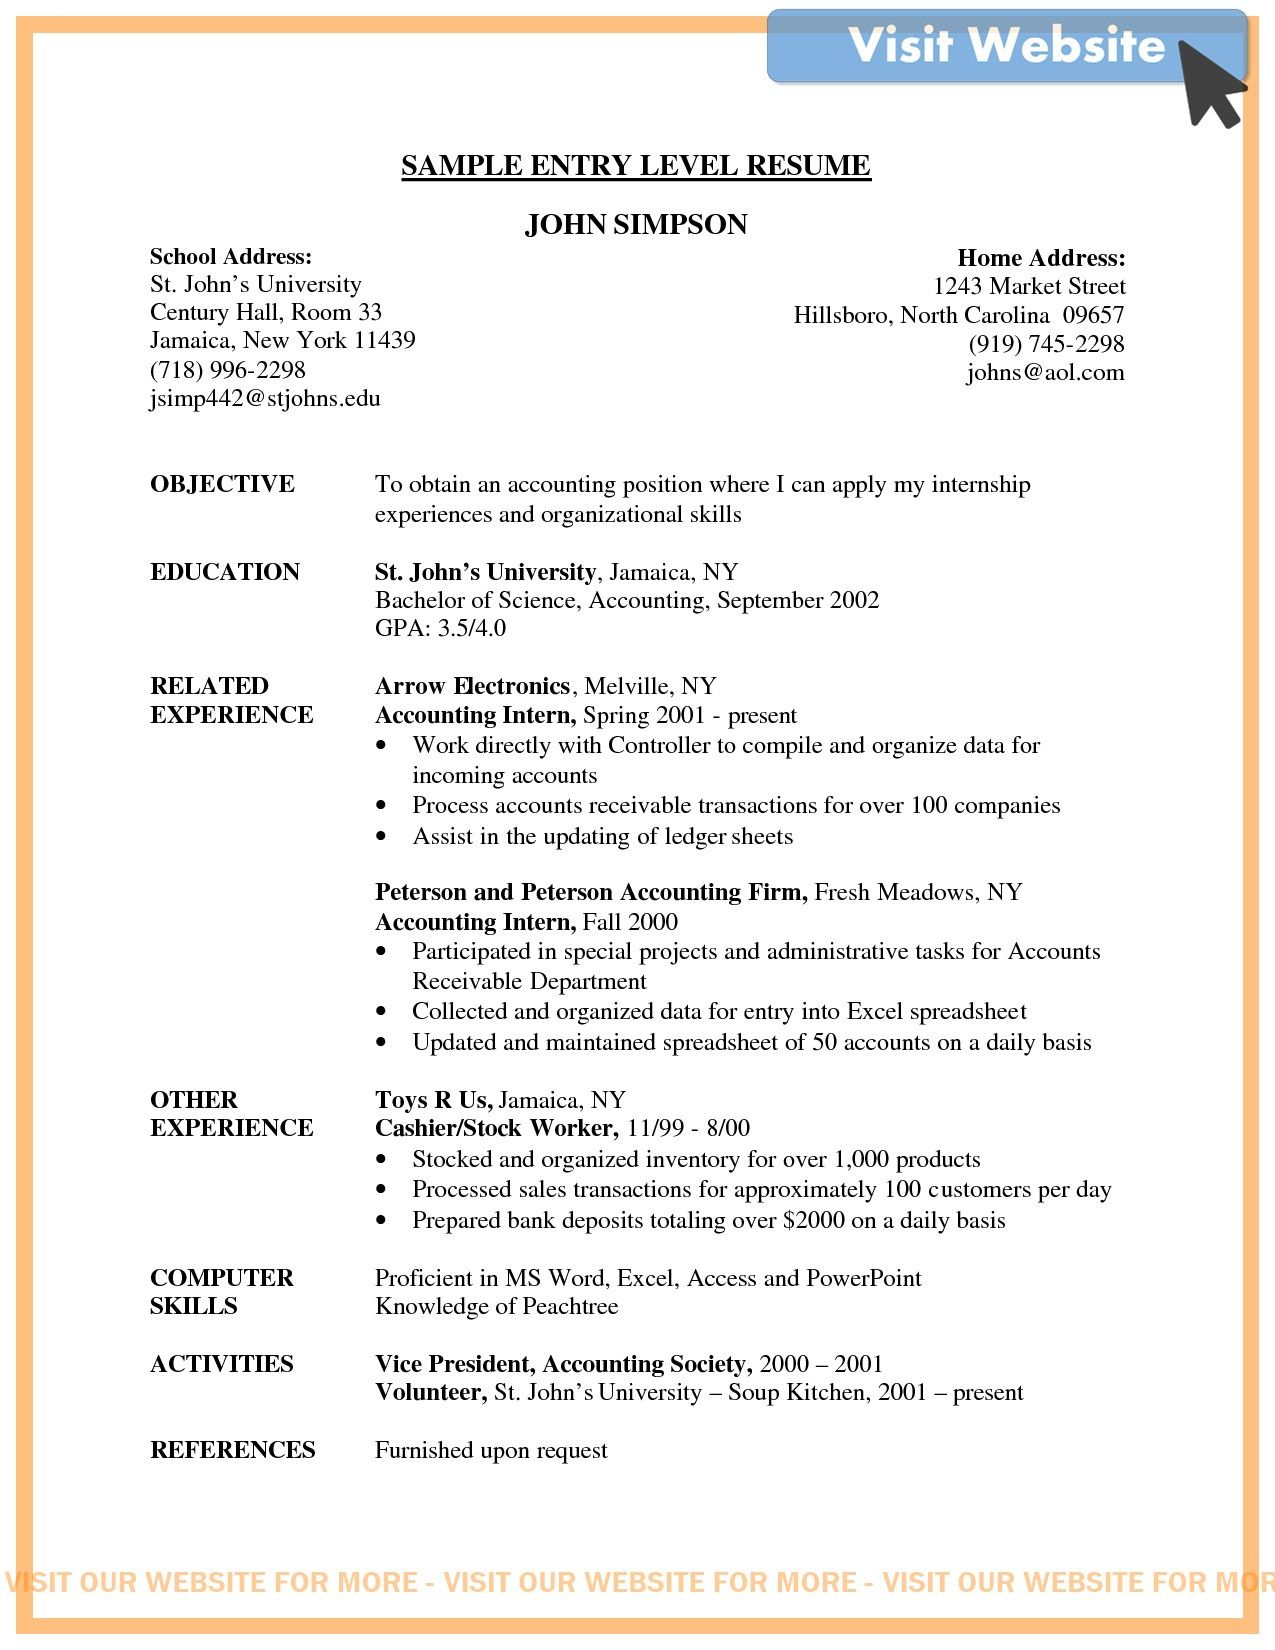 firefighter resume cover letter samples in 2020 Entry